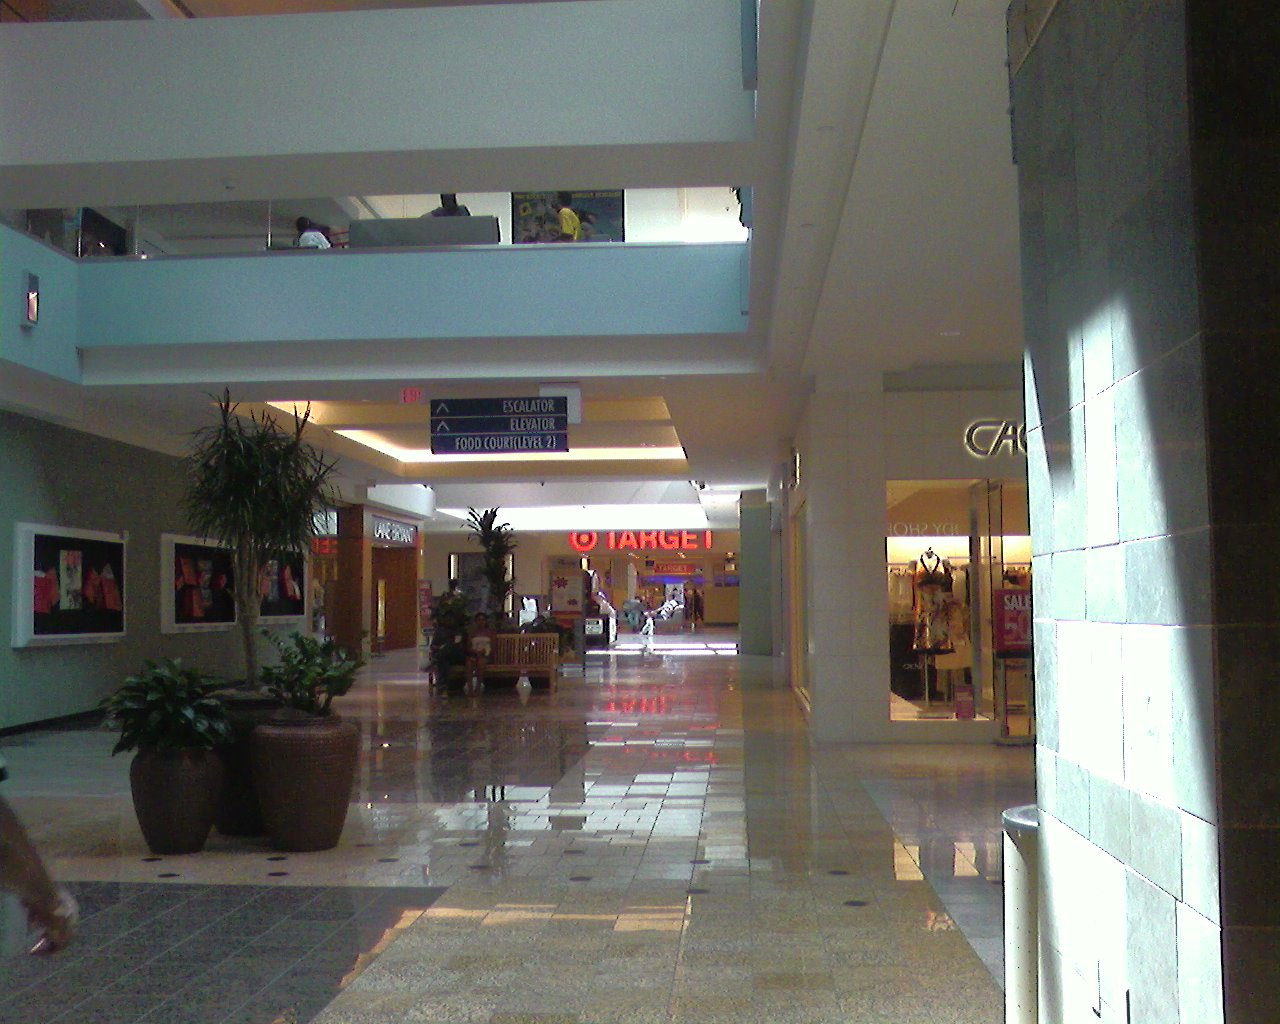 Westfield Shoppingtown Wheaton Mall in Wheaton, Maryland